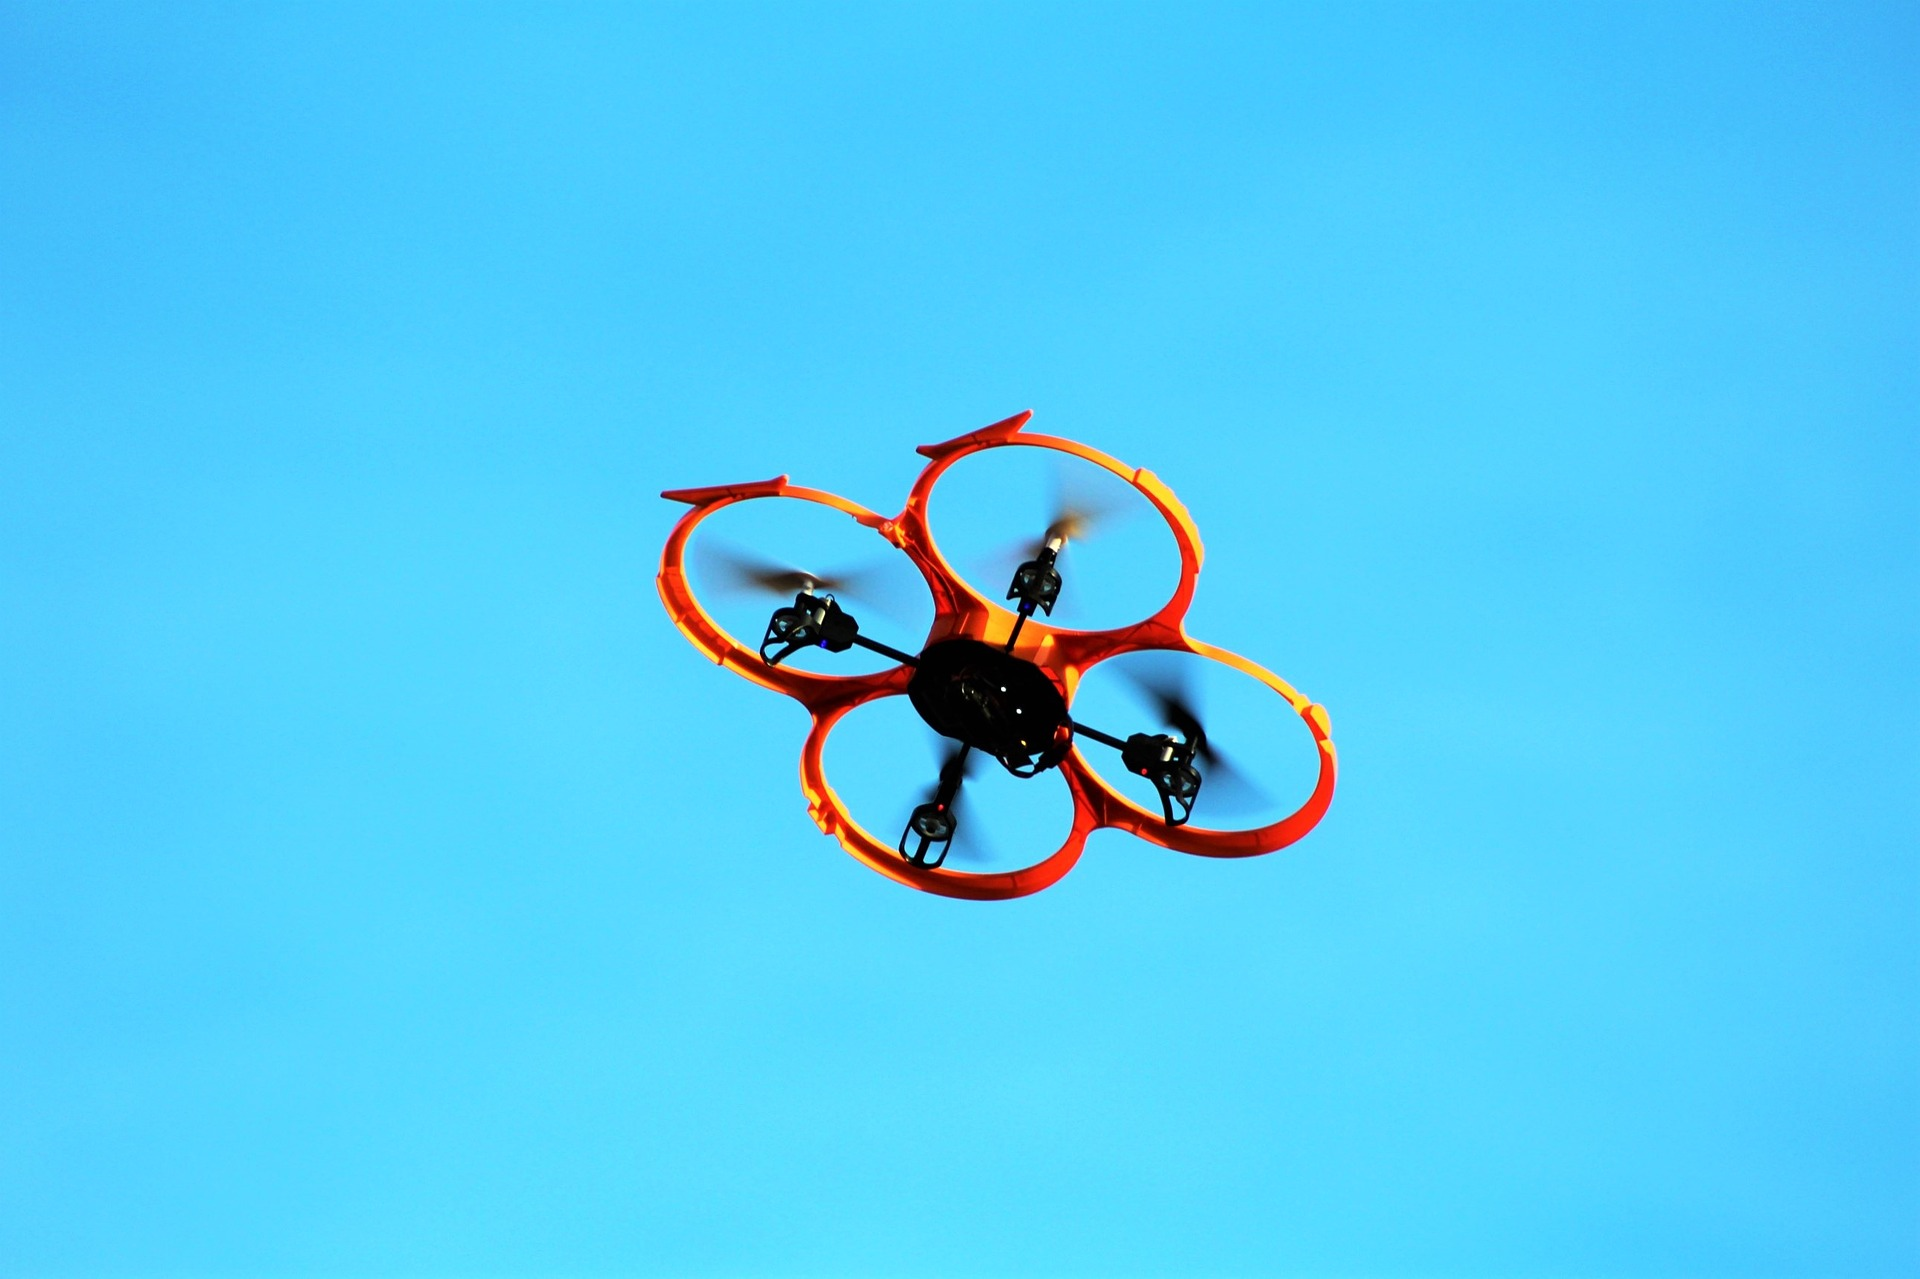 With the recent advances in technology and design aircraft concepts - Although Drones Are Still A Pretty Recent Invention They As A Market Are Growing Fast And Will Soon Hit Their Teens And Just Like Teenagers